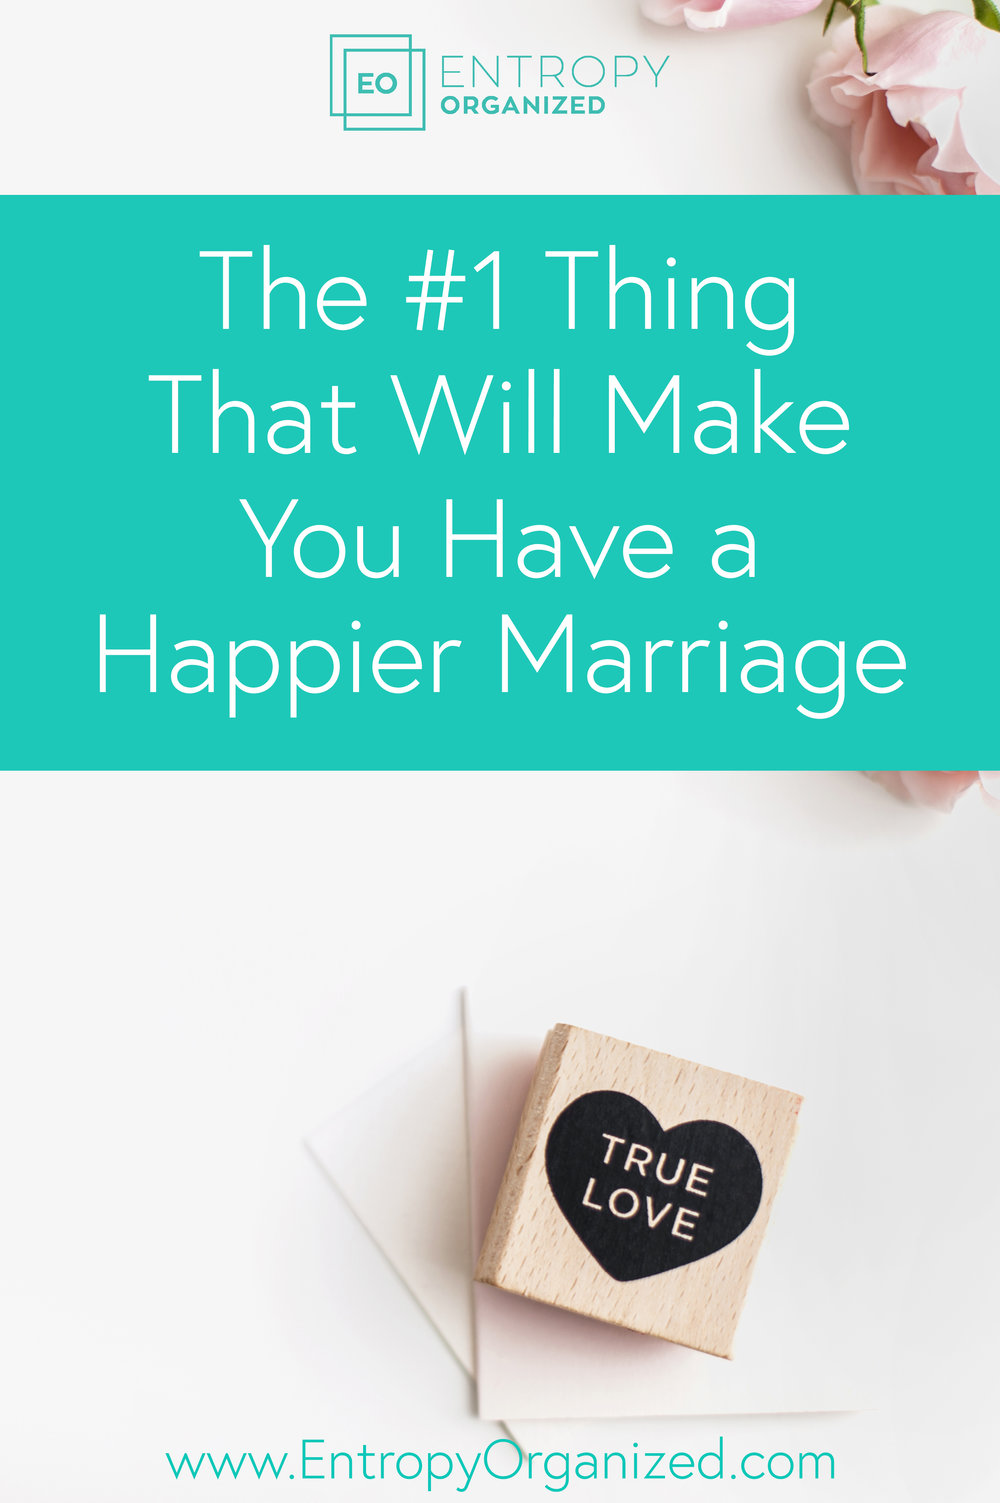 #1 way to have a happier marriage